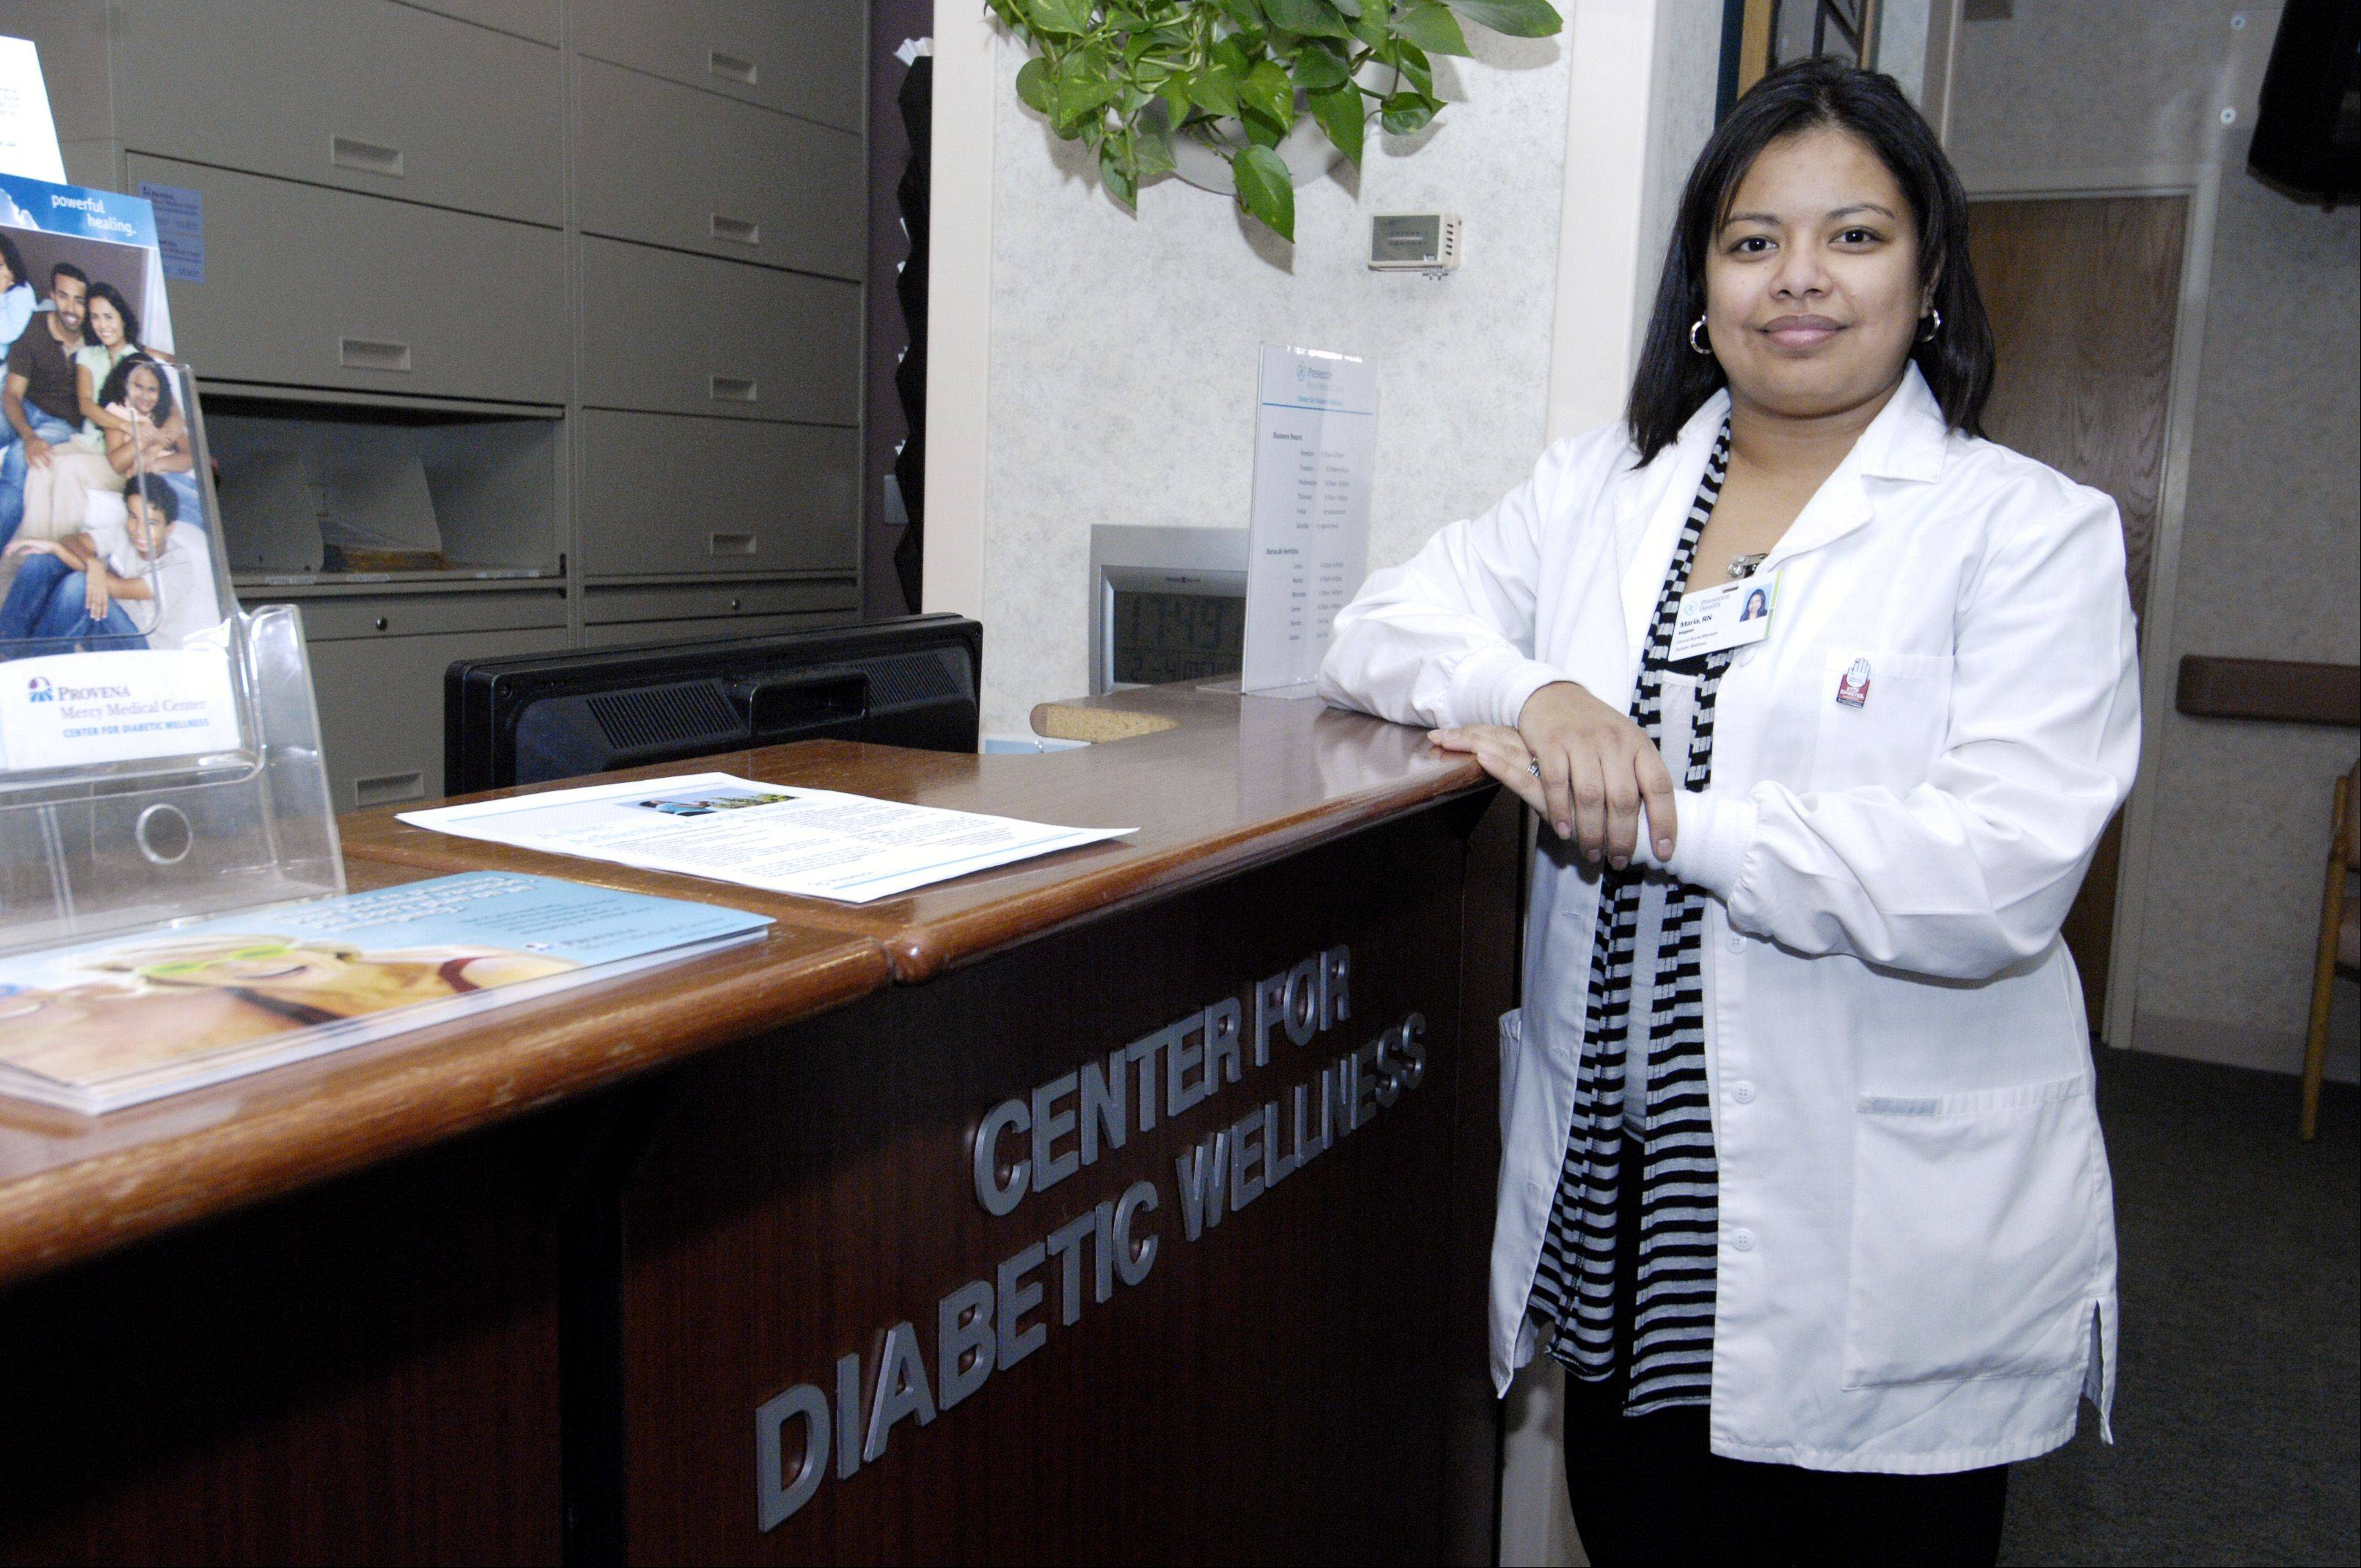 Maria Iniguez, clinical manager of the Center for Diabetic Wellness at Provena Mercy Medical Center, said if current trends of obesity continue, the American Diabetes Association predicts that one in three American adults could have diabetes by 2050.